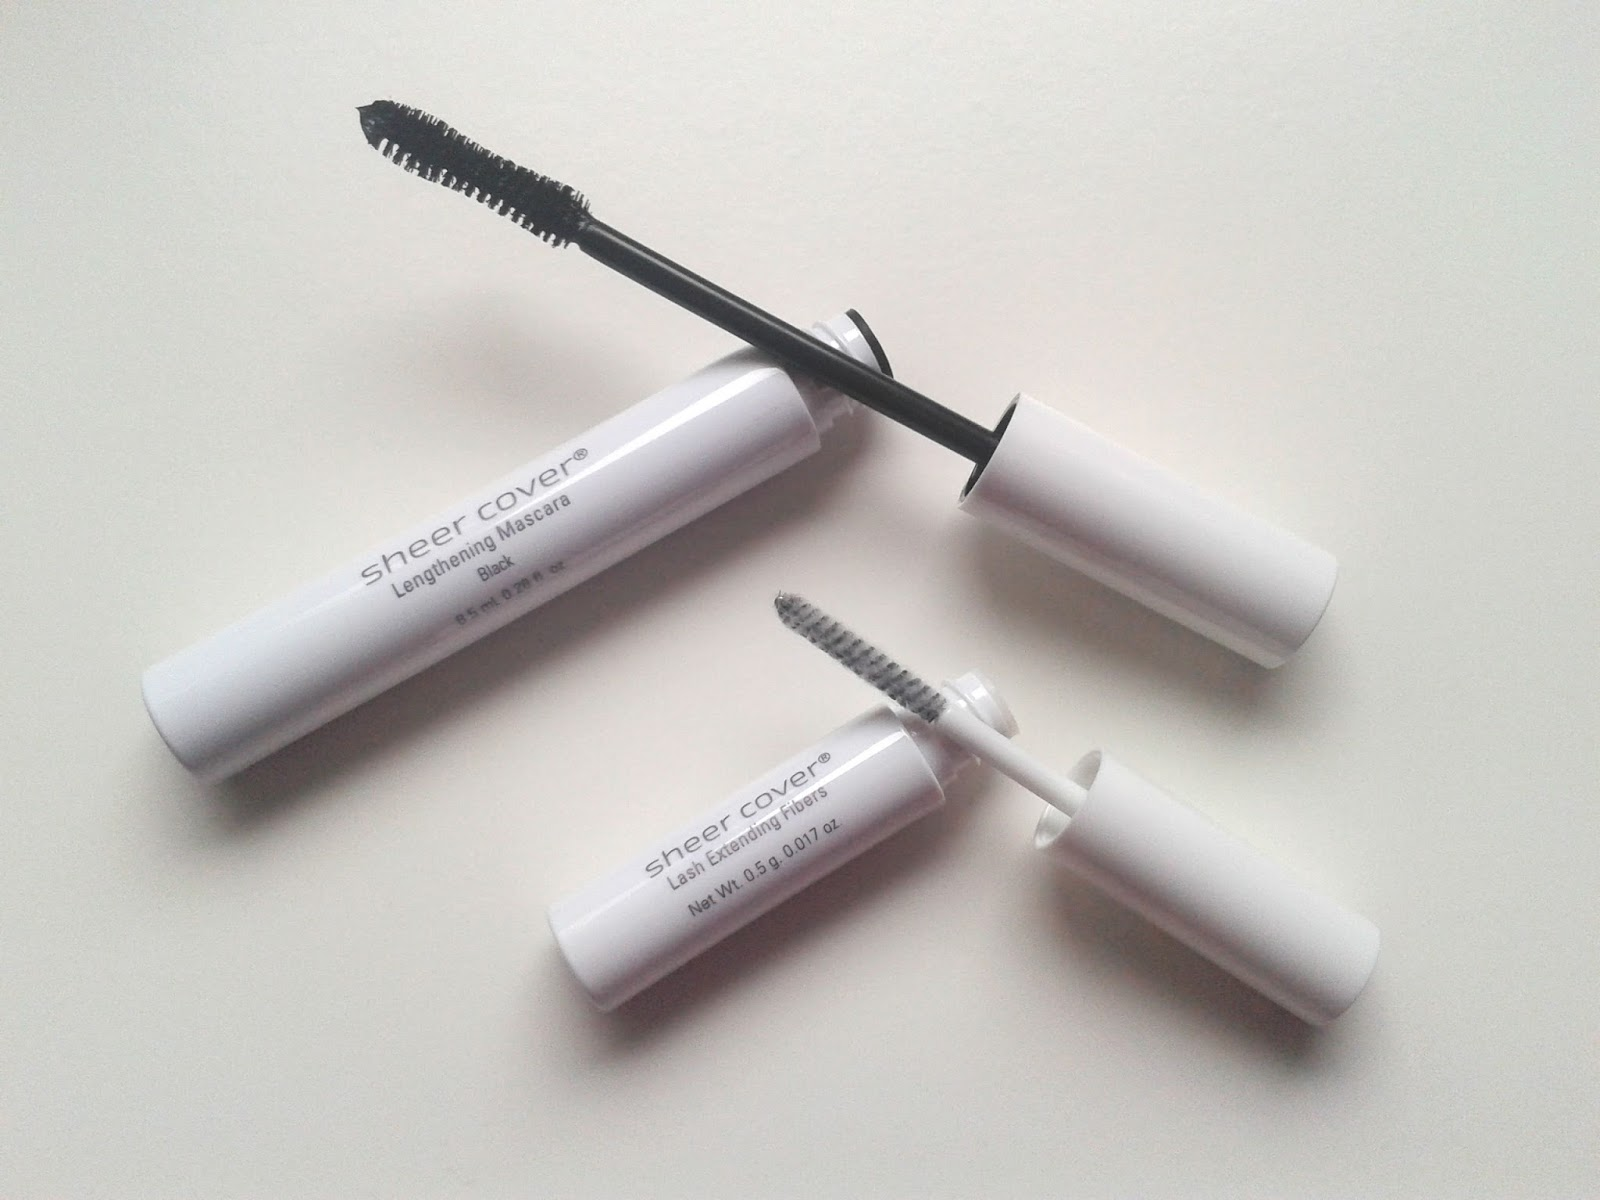 Sheer Cover Studio Lengthening Mascara Lash Extending Fibers